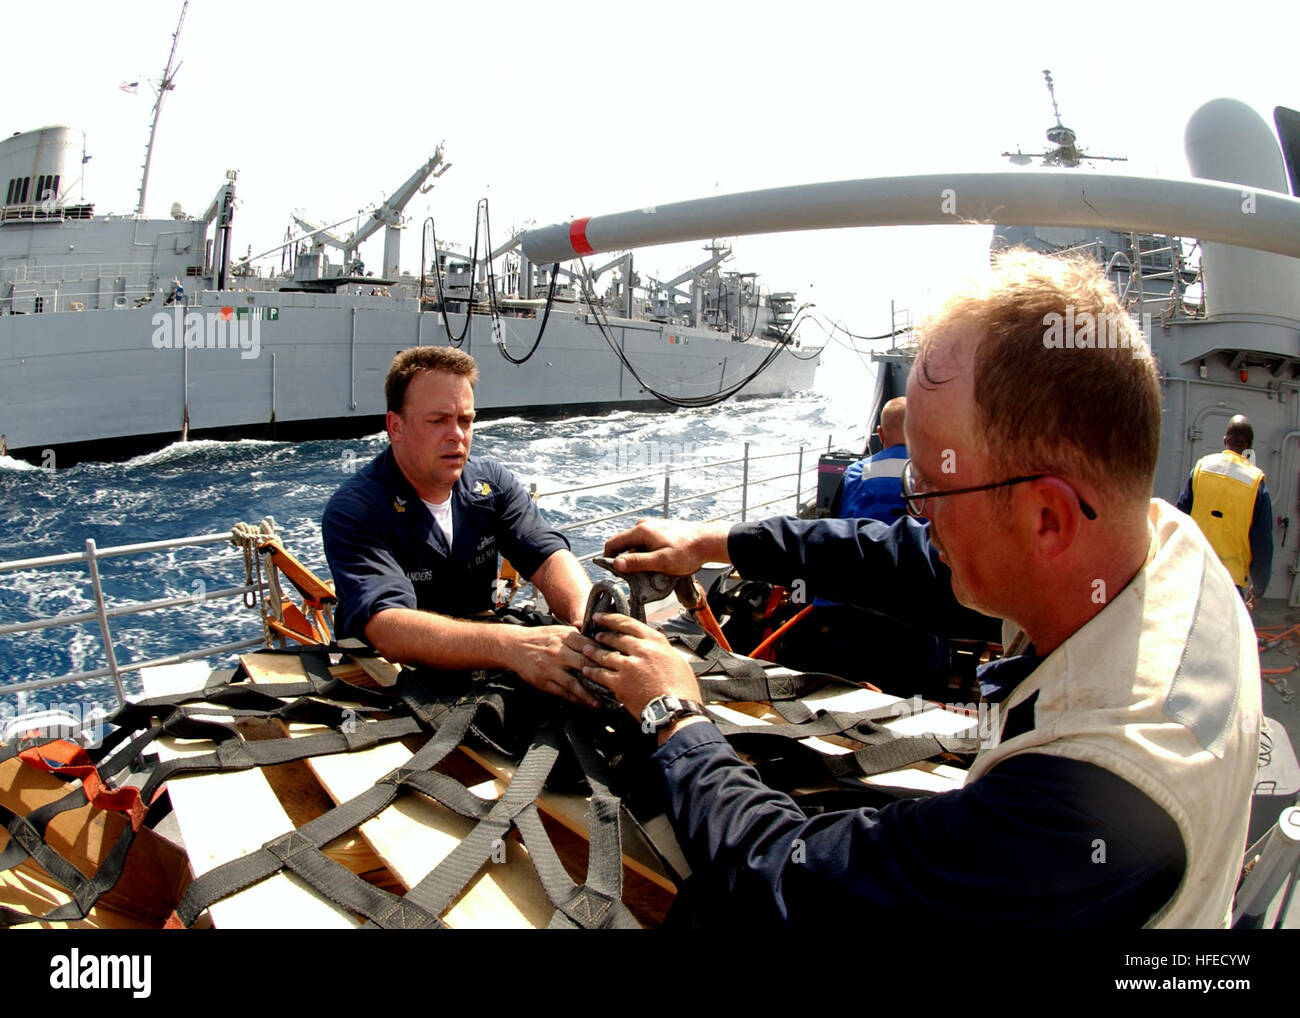 050514-N-5526M-005  Gulf of Aden (May 14, 2005) - Fire Controlman 1st Class Ron Sanders and Boatswain Mate 2nd Class - Stock Image